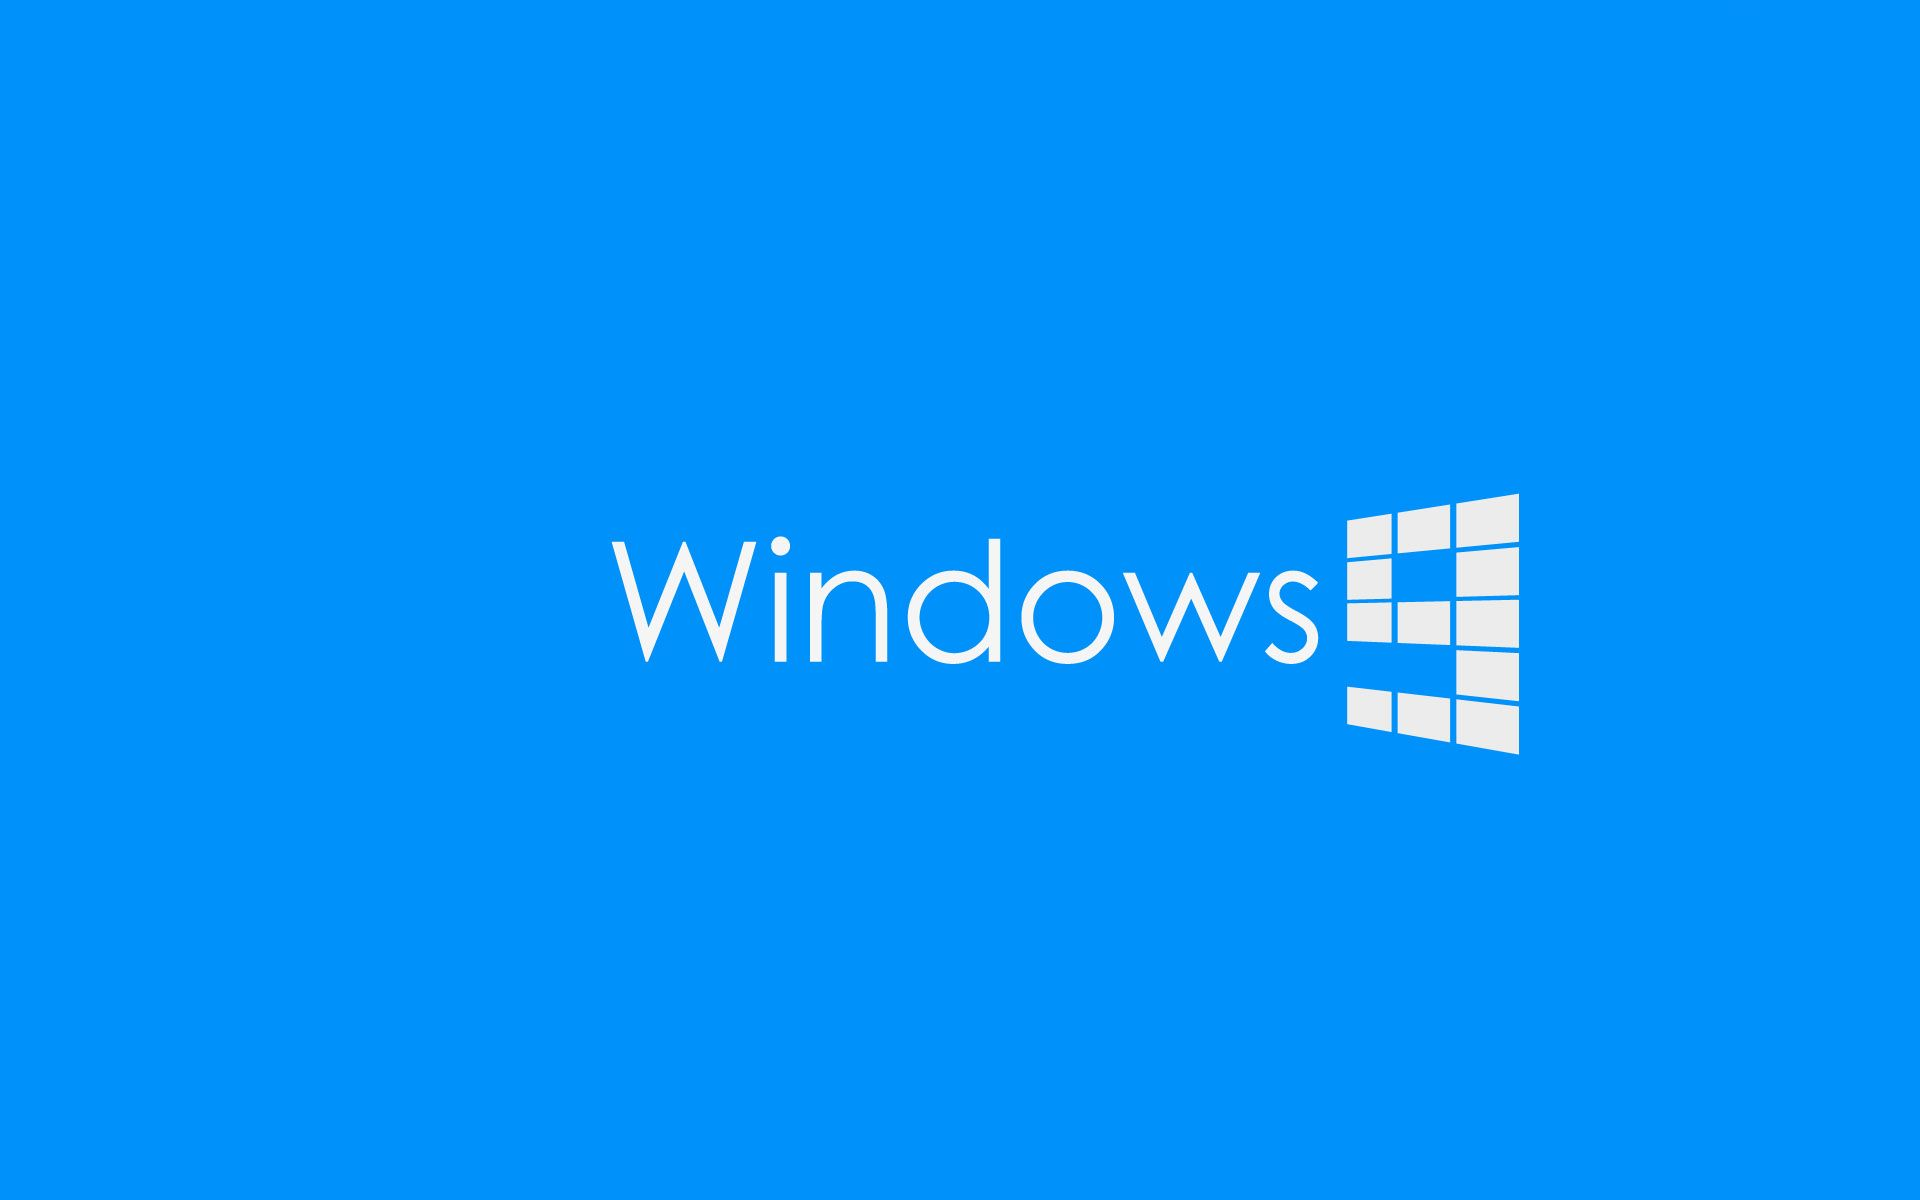 Are You Looking For Windows 9 HD Wallpapers Download Latest Collection Of